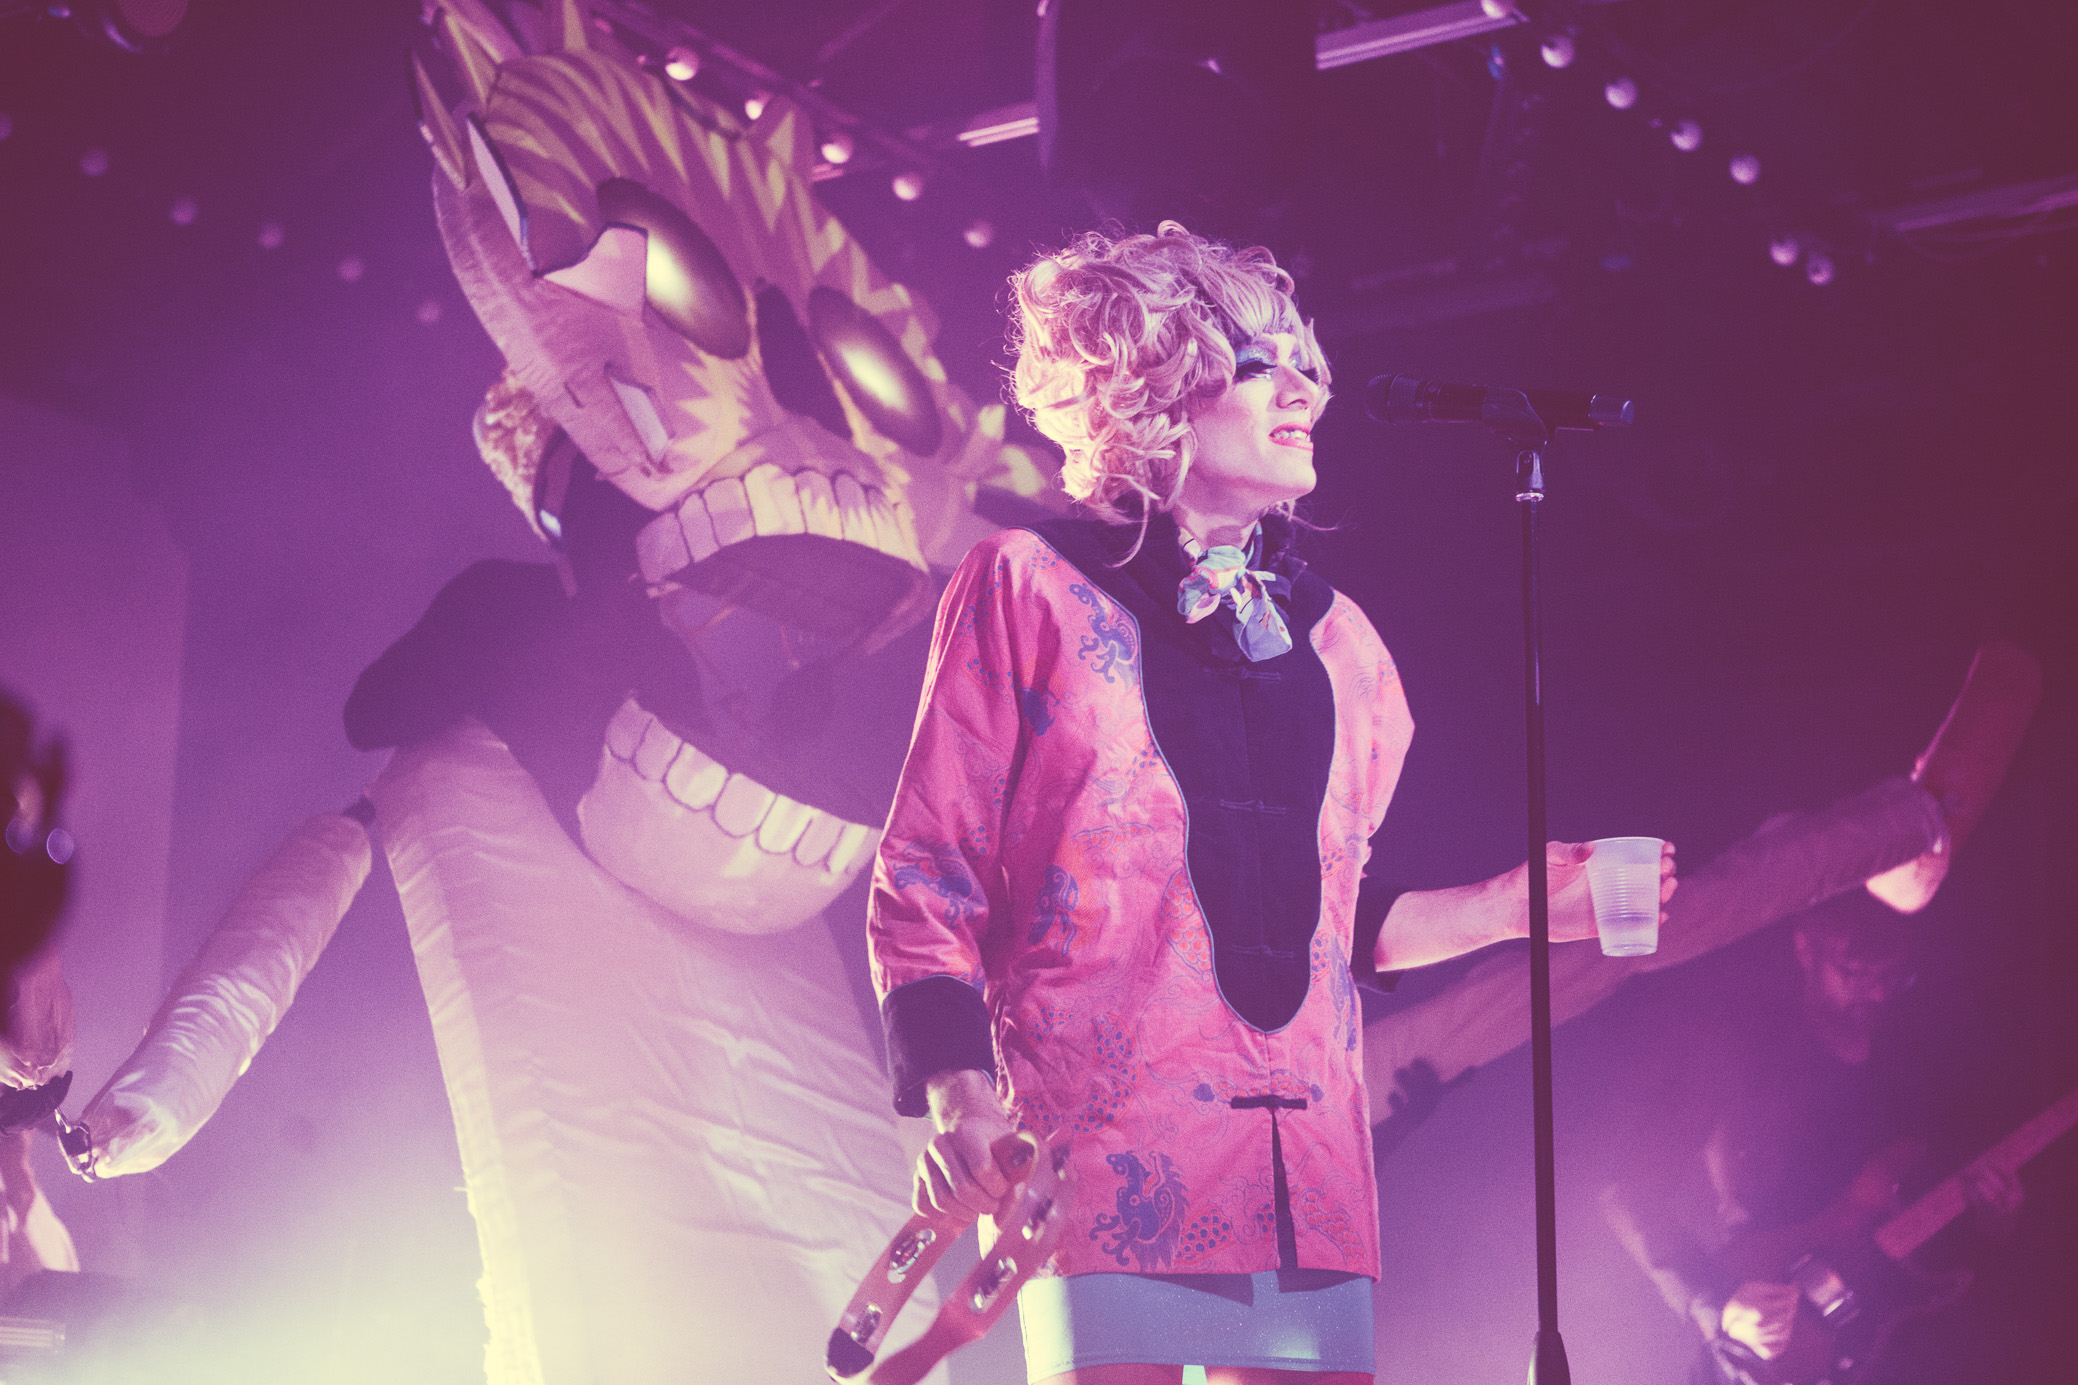 Kevin Barnes of Of Montreal performs in concert at Saturn Birmingham in Birmingham, Alabama on May 13th, 2018. (Photo by David A. Smith/DSmithScenes)